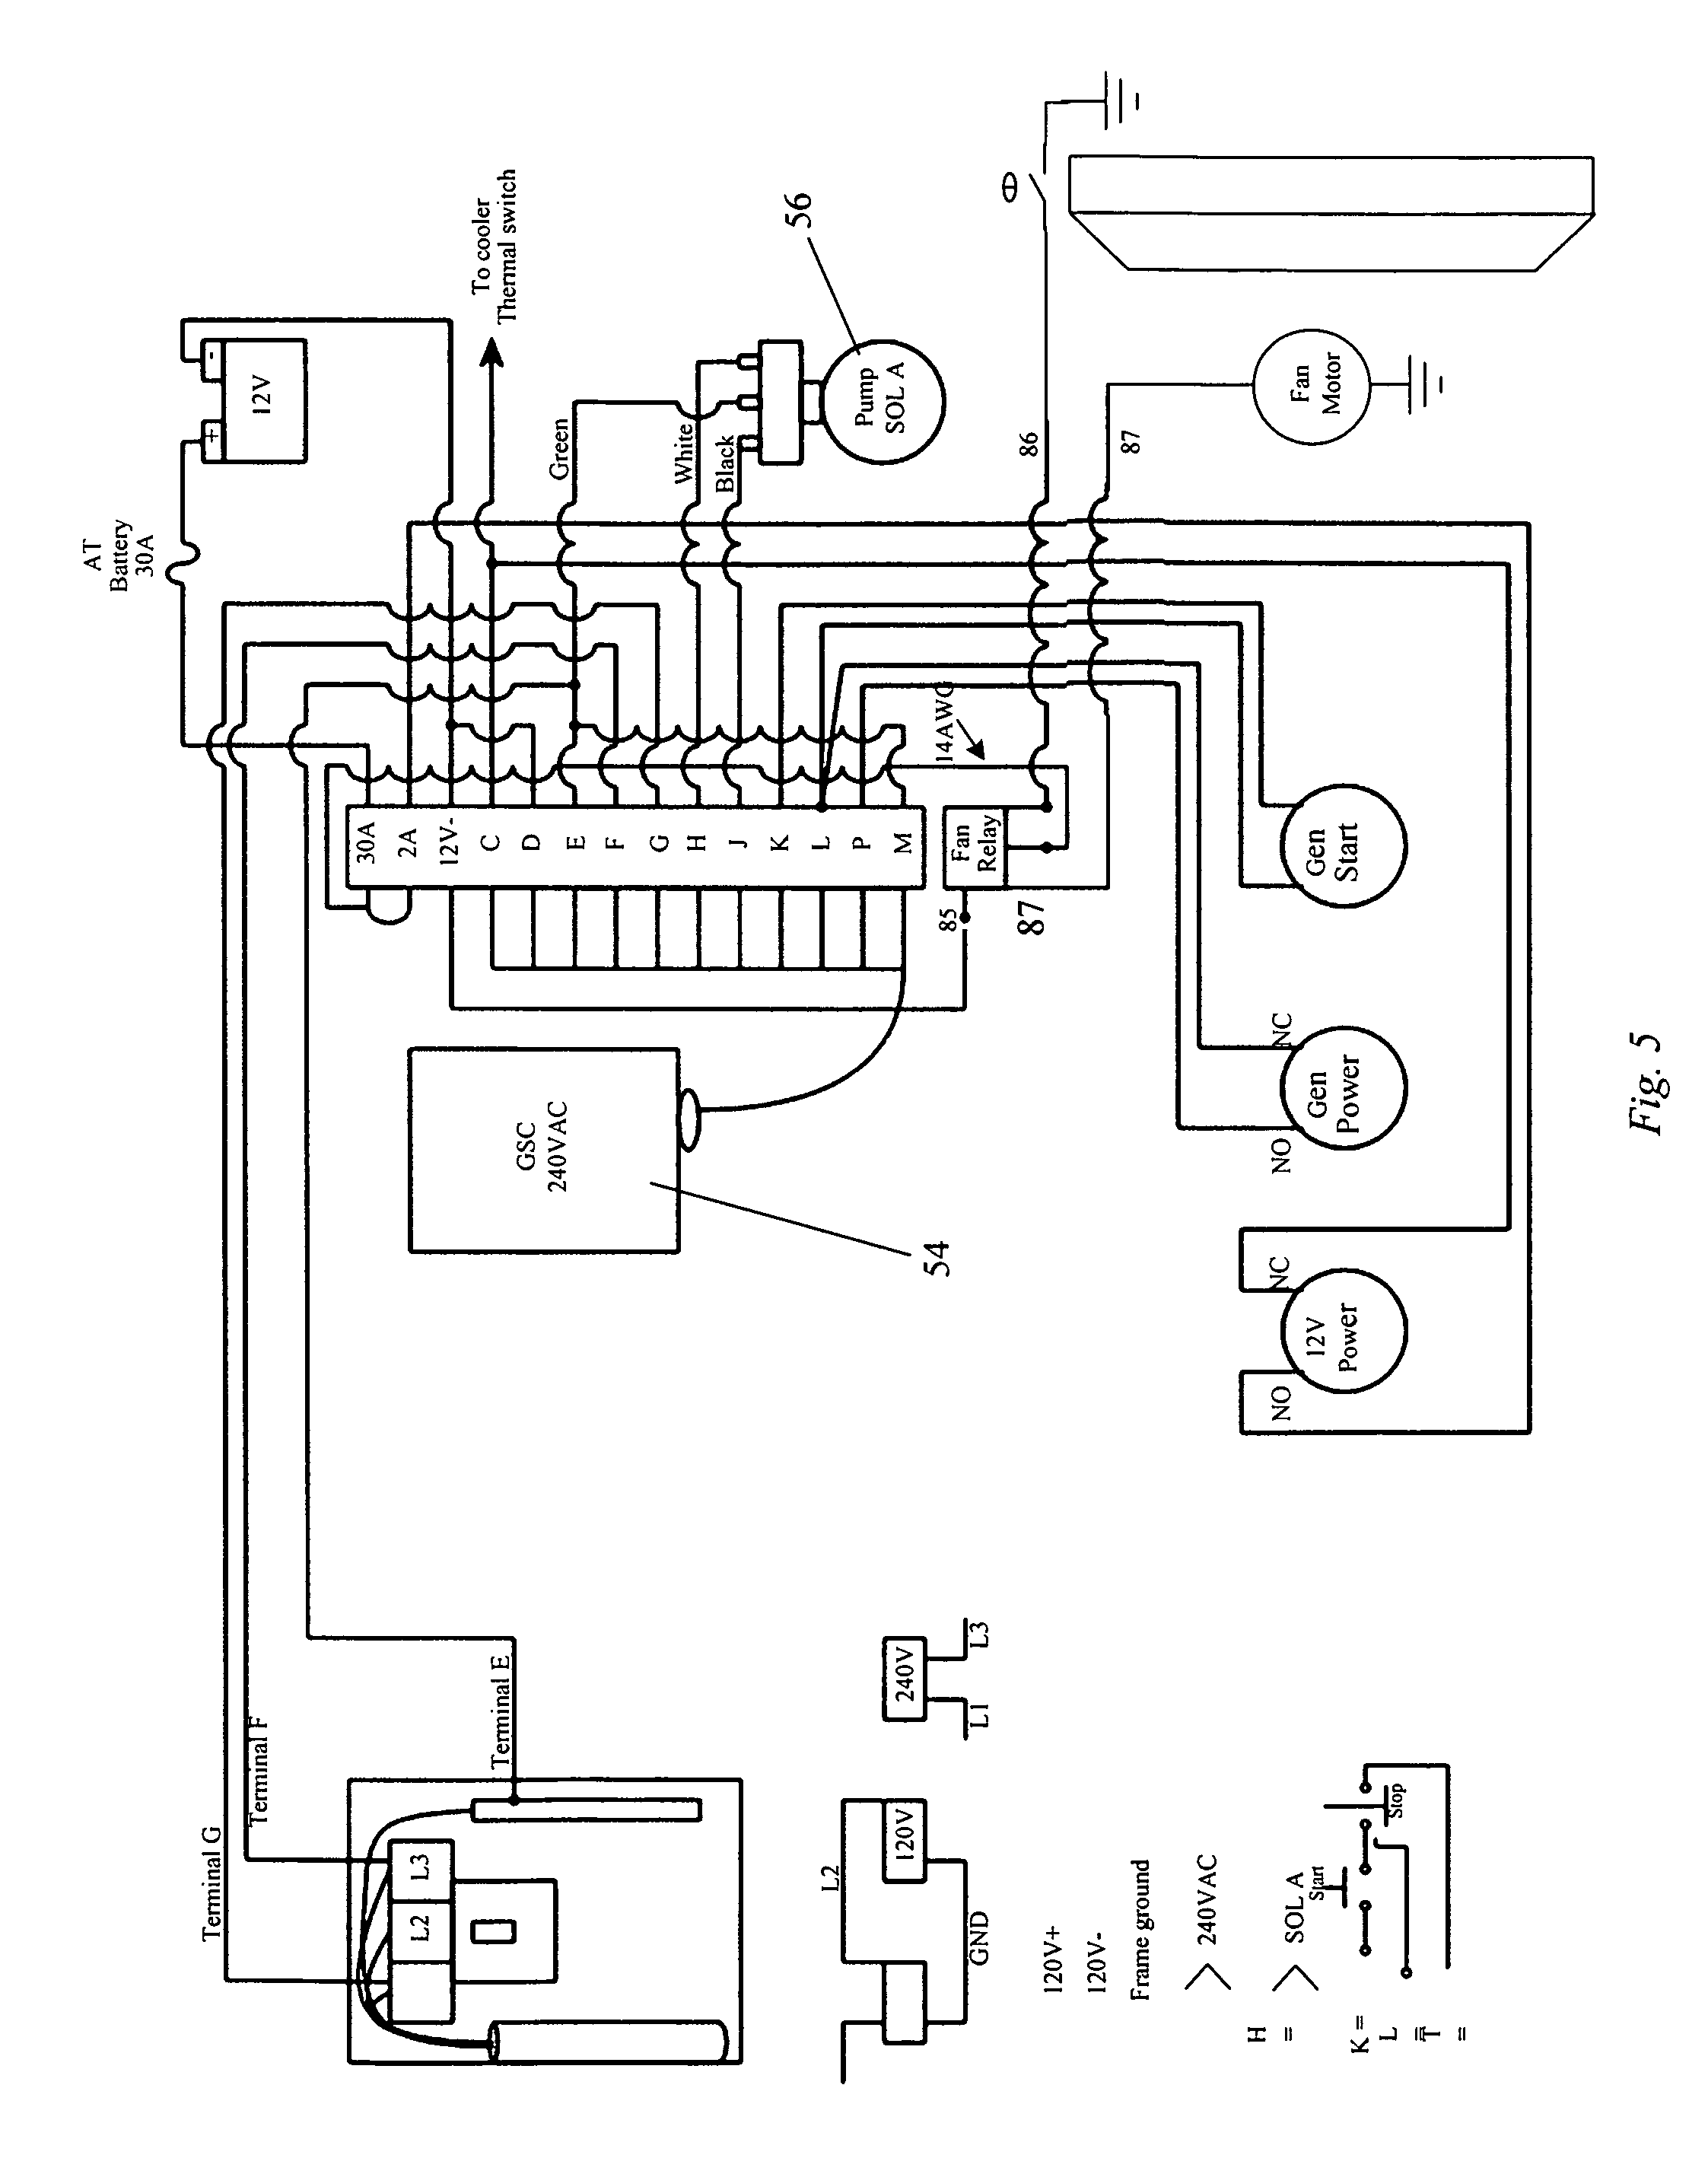 hale pump pto switch wiring diagram hearing aid wiring